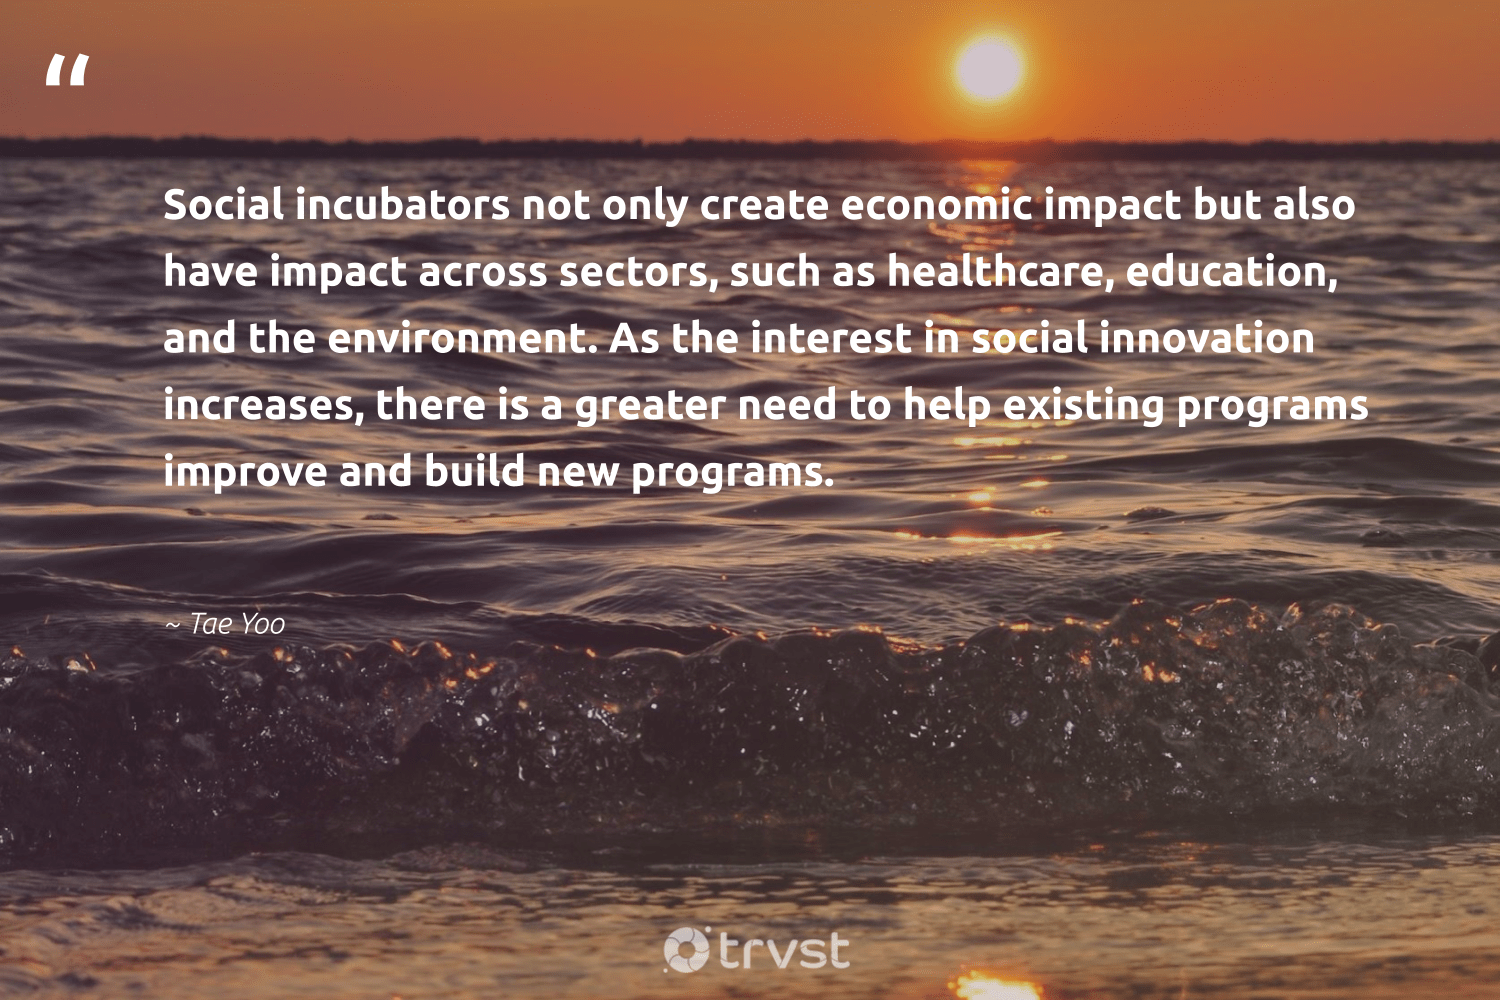 """Social incubators not only create economic impact but also have impact across sectors, such as healthcare, education, and the environment. As the interest in social innovation increases, there is a greater need to help existing programs improve and build new programs.""  - Tae Yoo #trvst #quotes #impact #environment #socialinnovation #education #planet #makeadifference #eco #socialchange #mothernature #dogood"